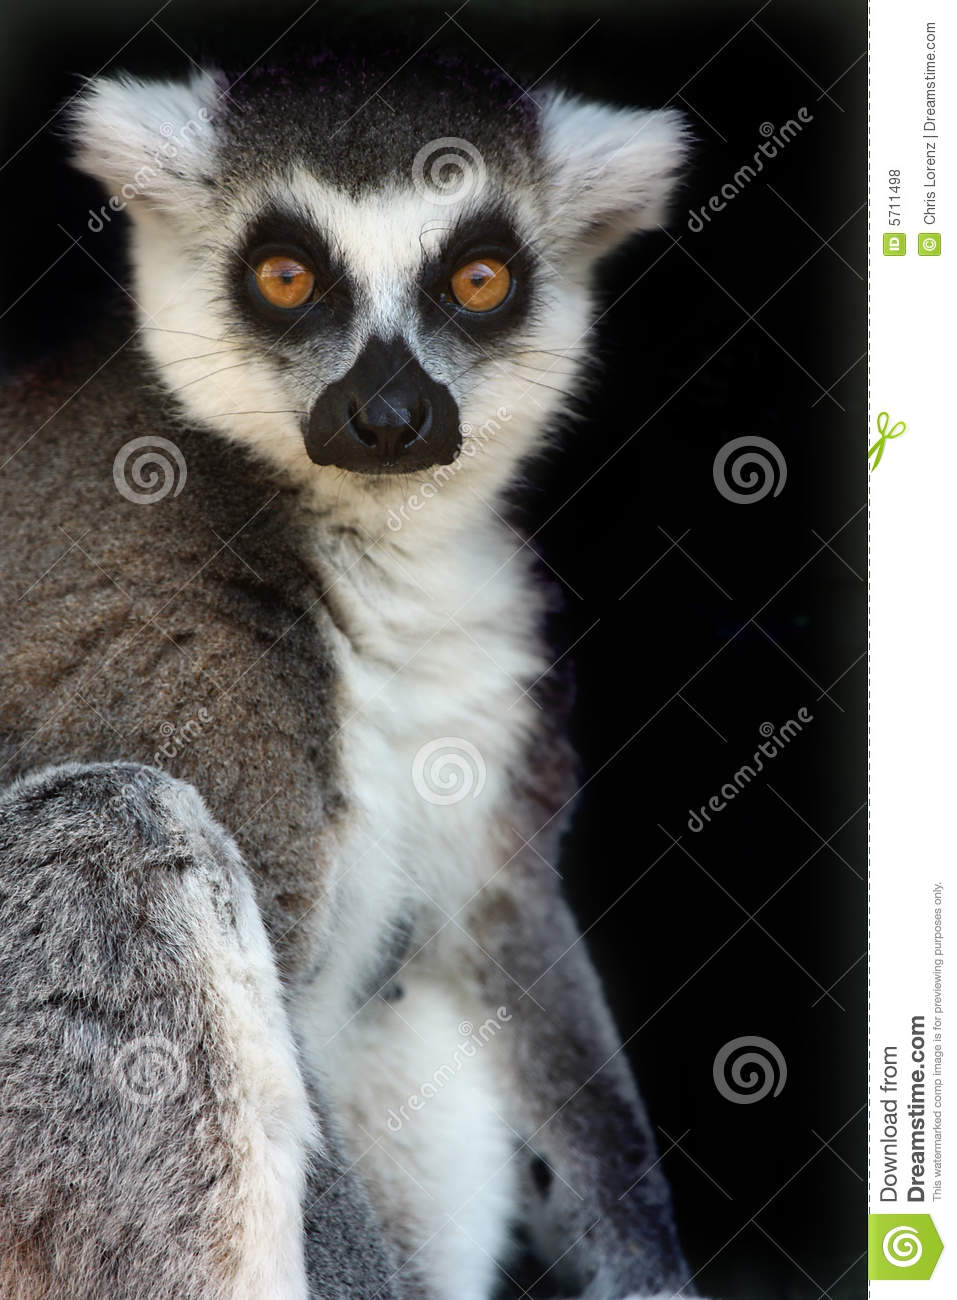 Female Ringtailed Lemur Royalty Free Stock Photos  Image